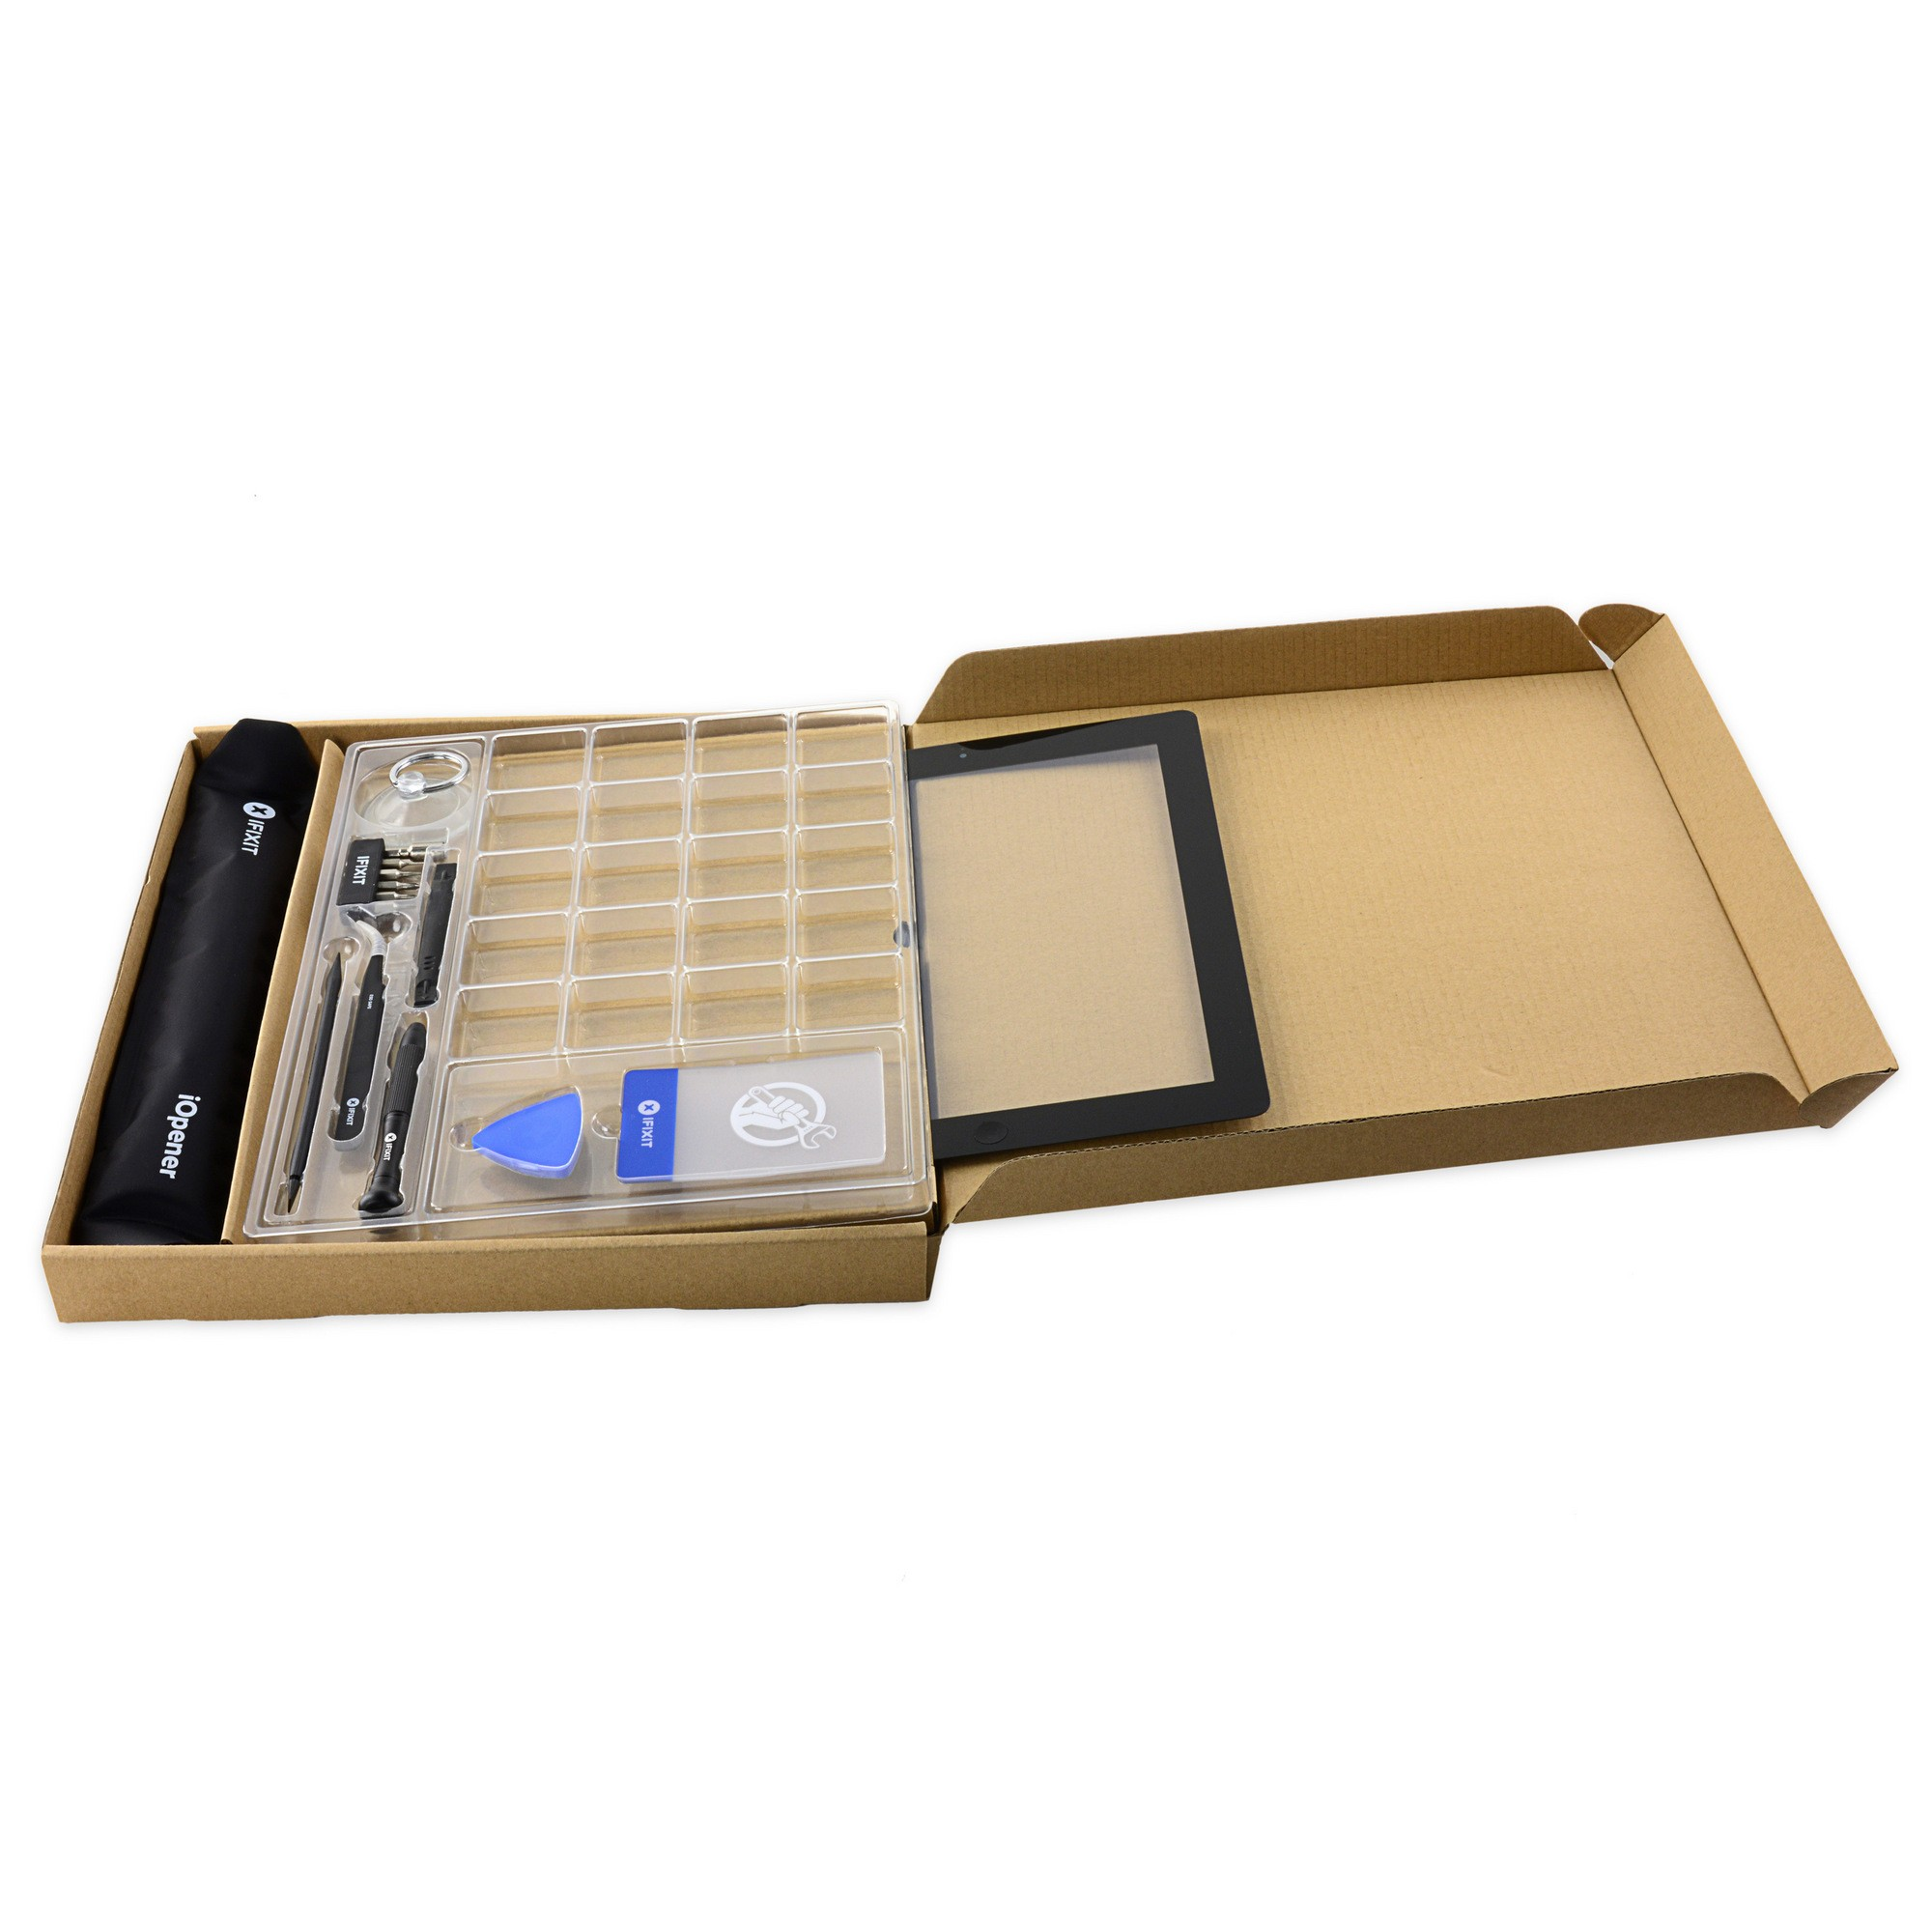 iPad 3 Front Glass/Digitizer Touch Panel Full Assembly, Fix Kit, New - White, IF116-018-9